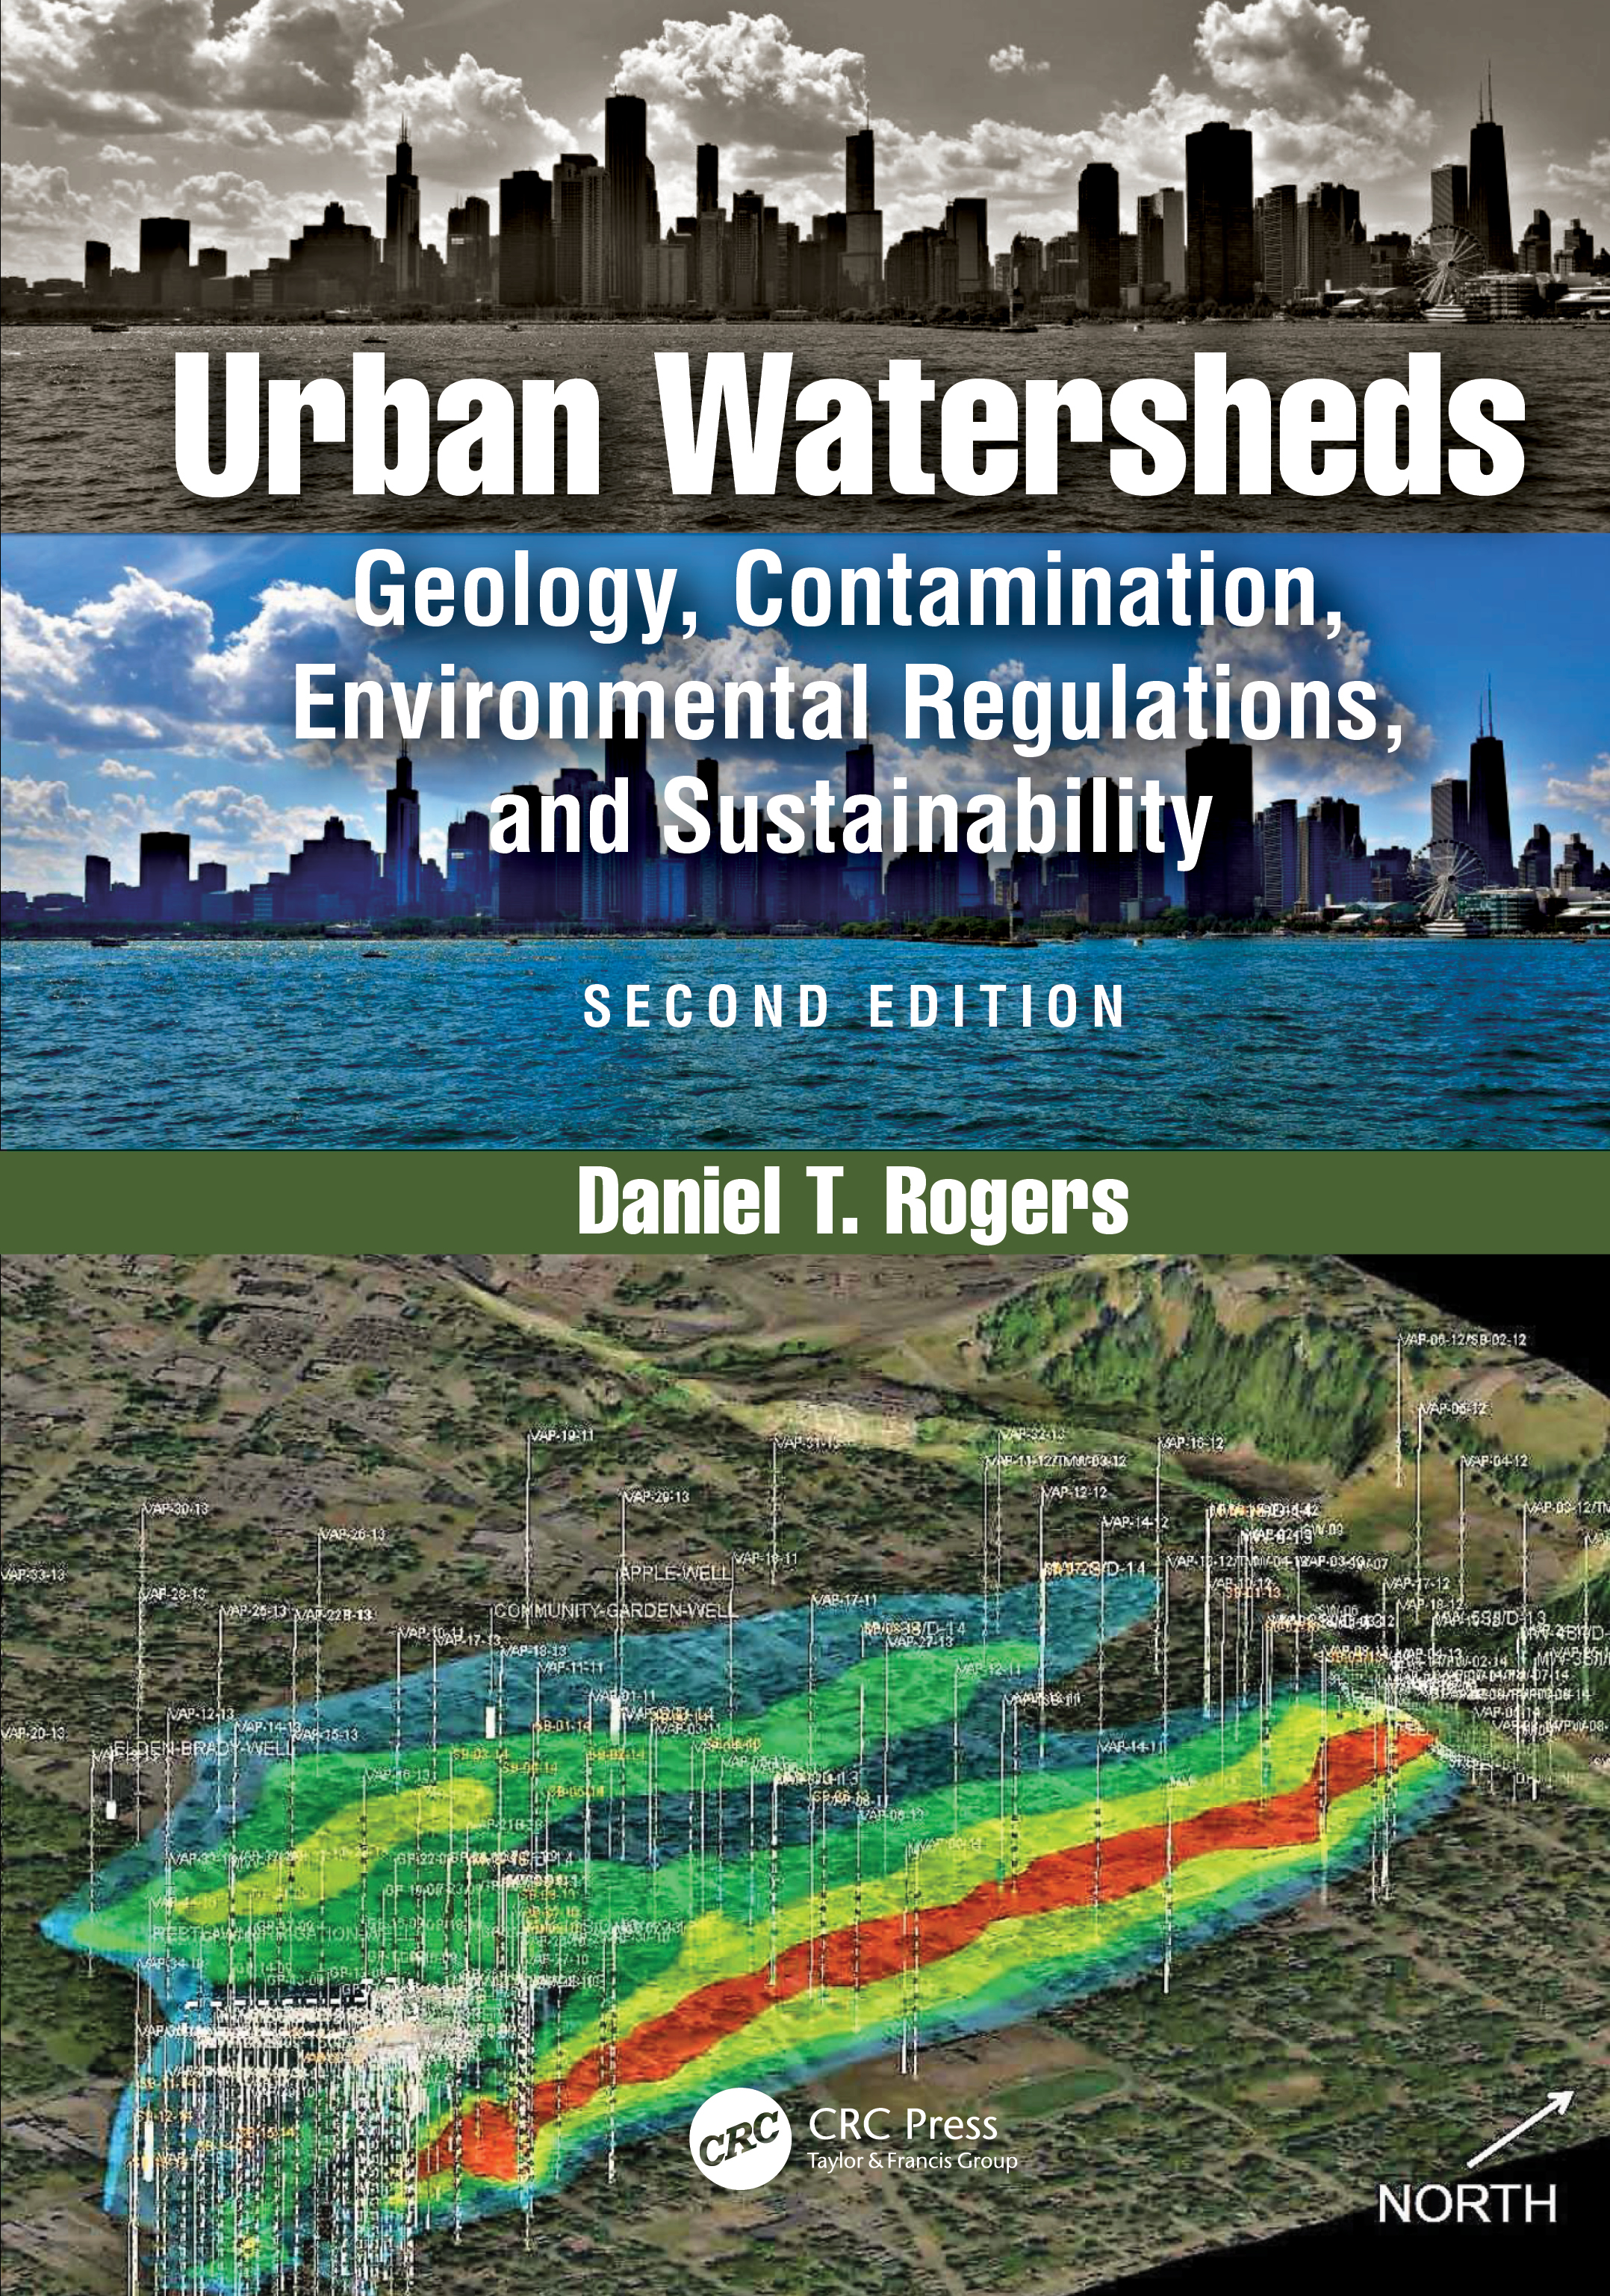 Urban Watersheds: Geology, Contamination, Environmental Regulations, and Sustainability, Second Edition book cover